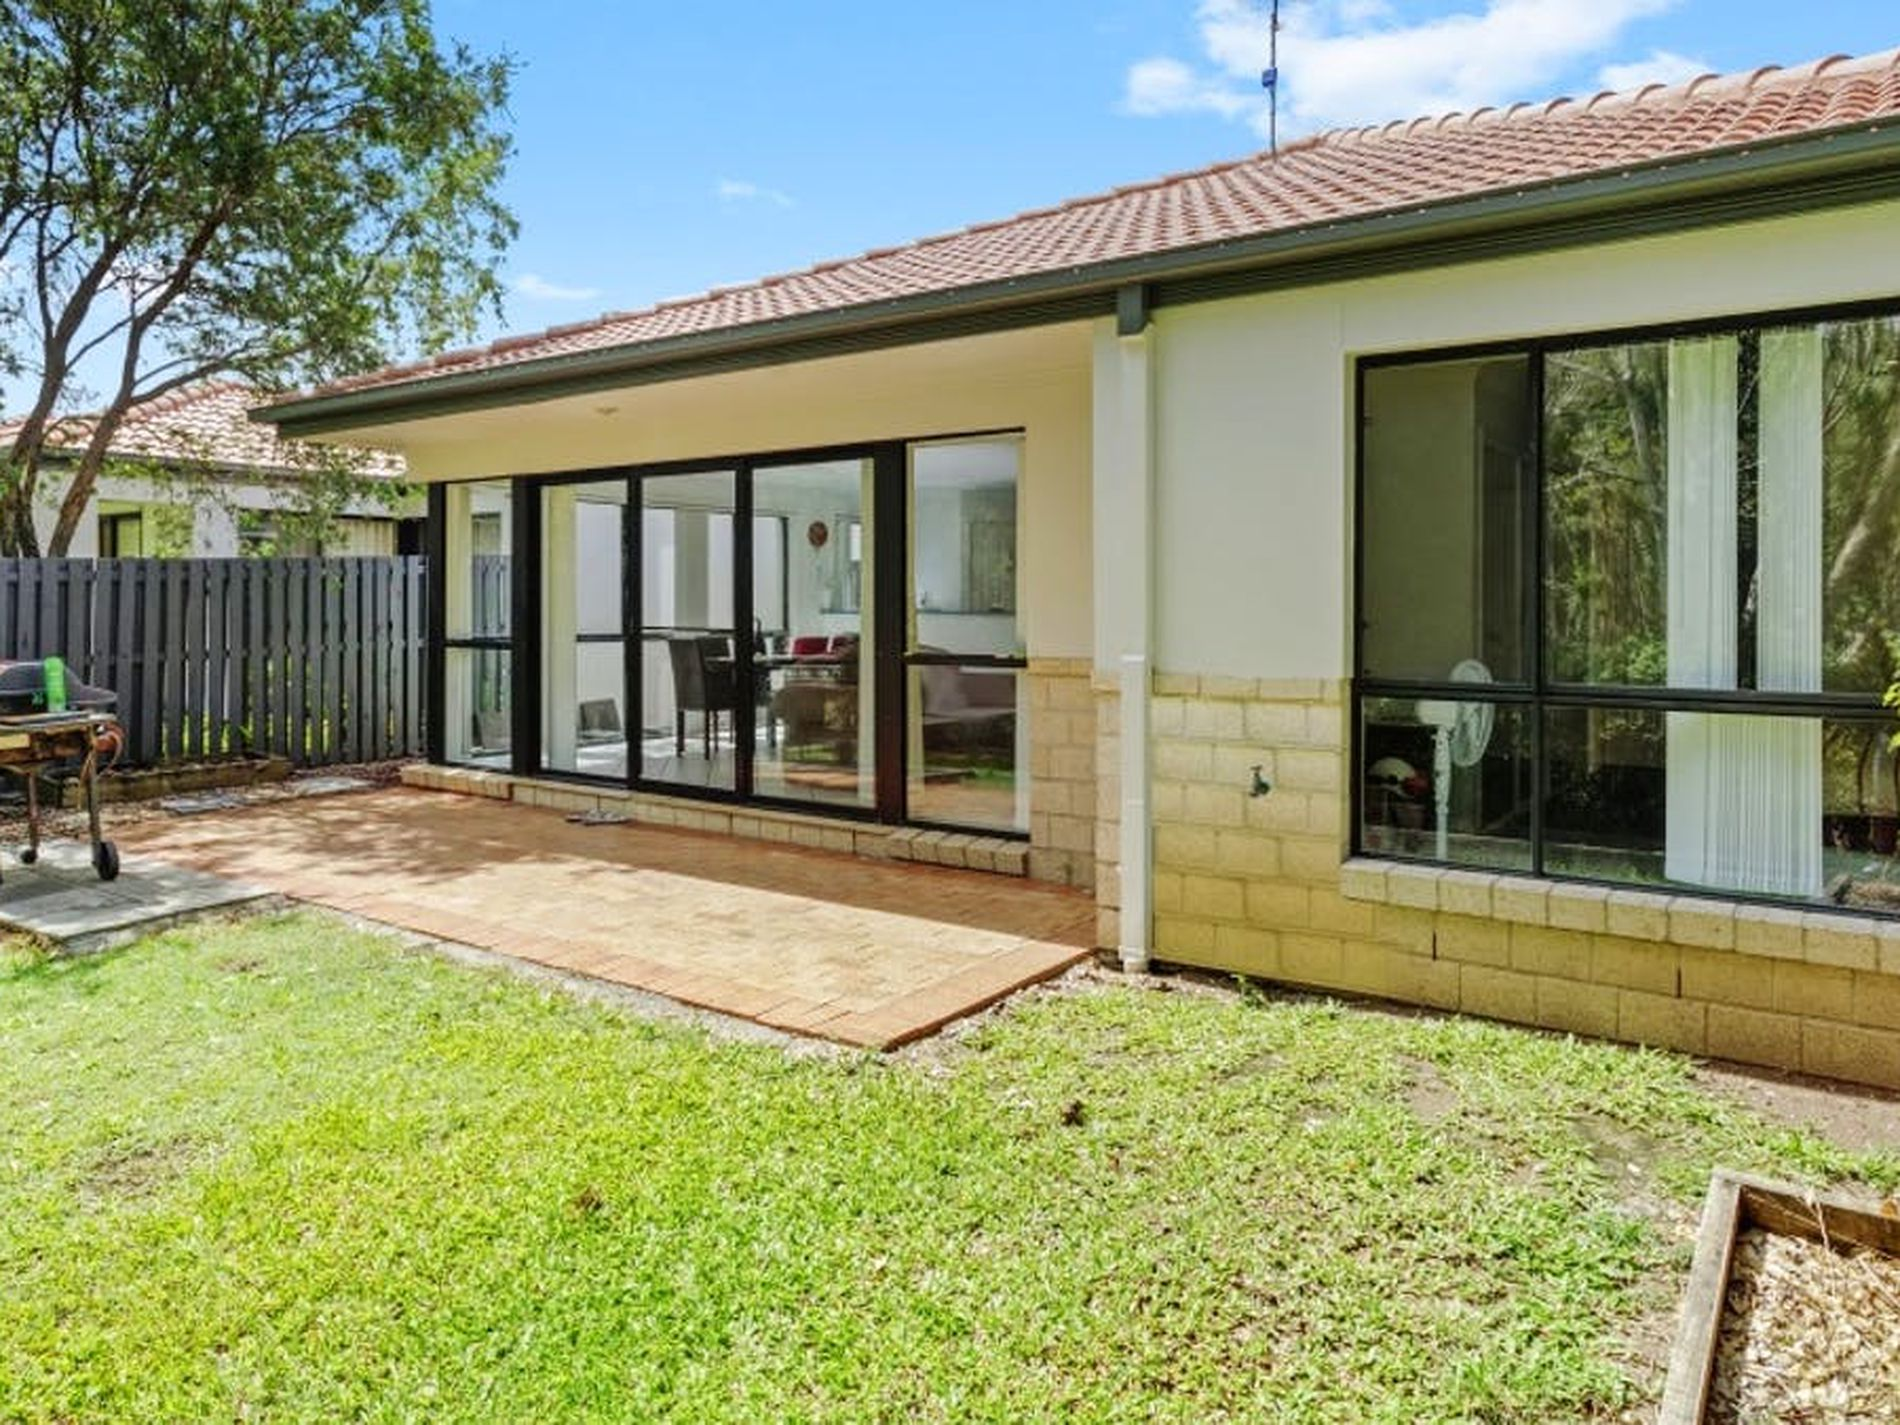 13 Melastoma Way, Arundel